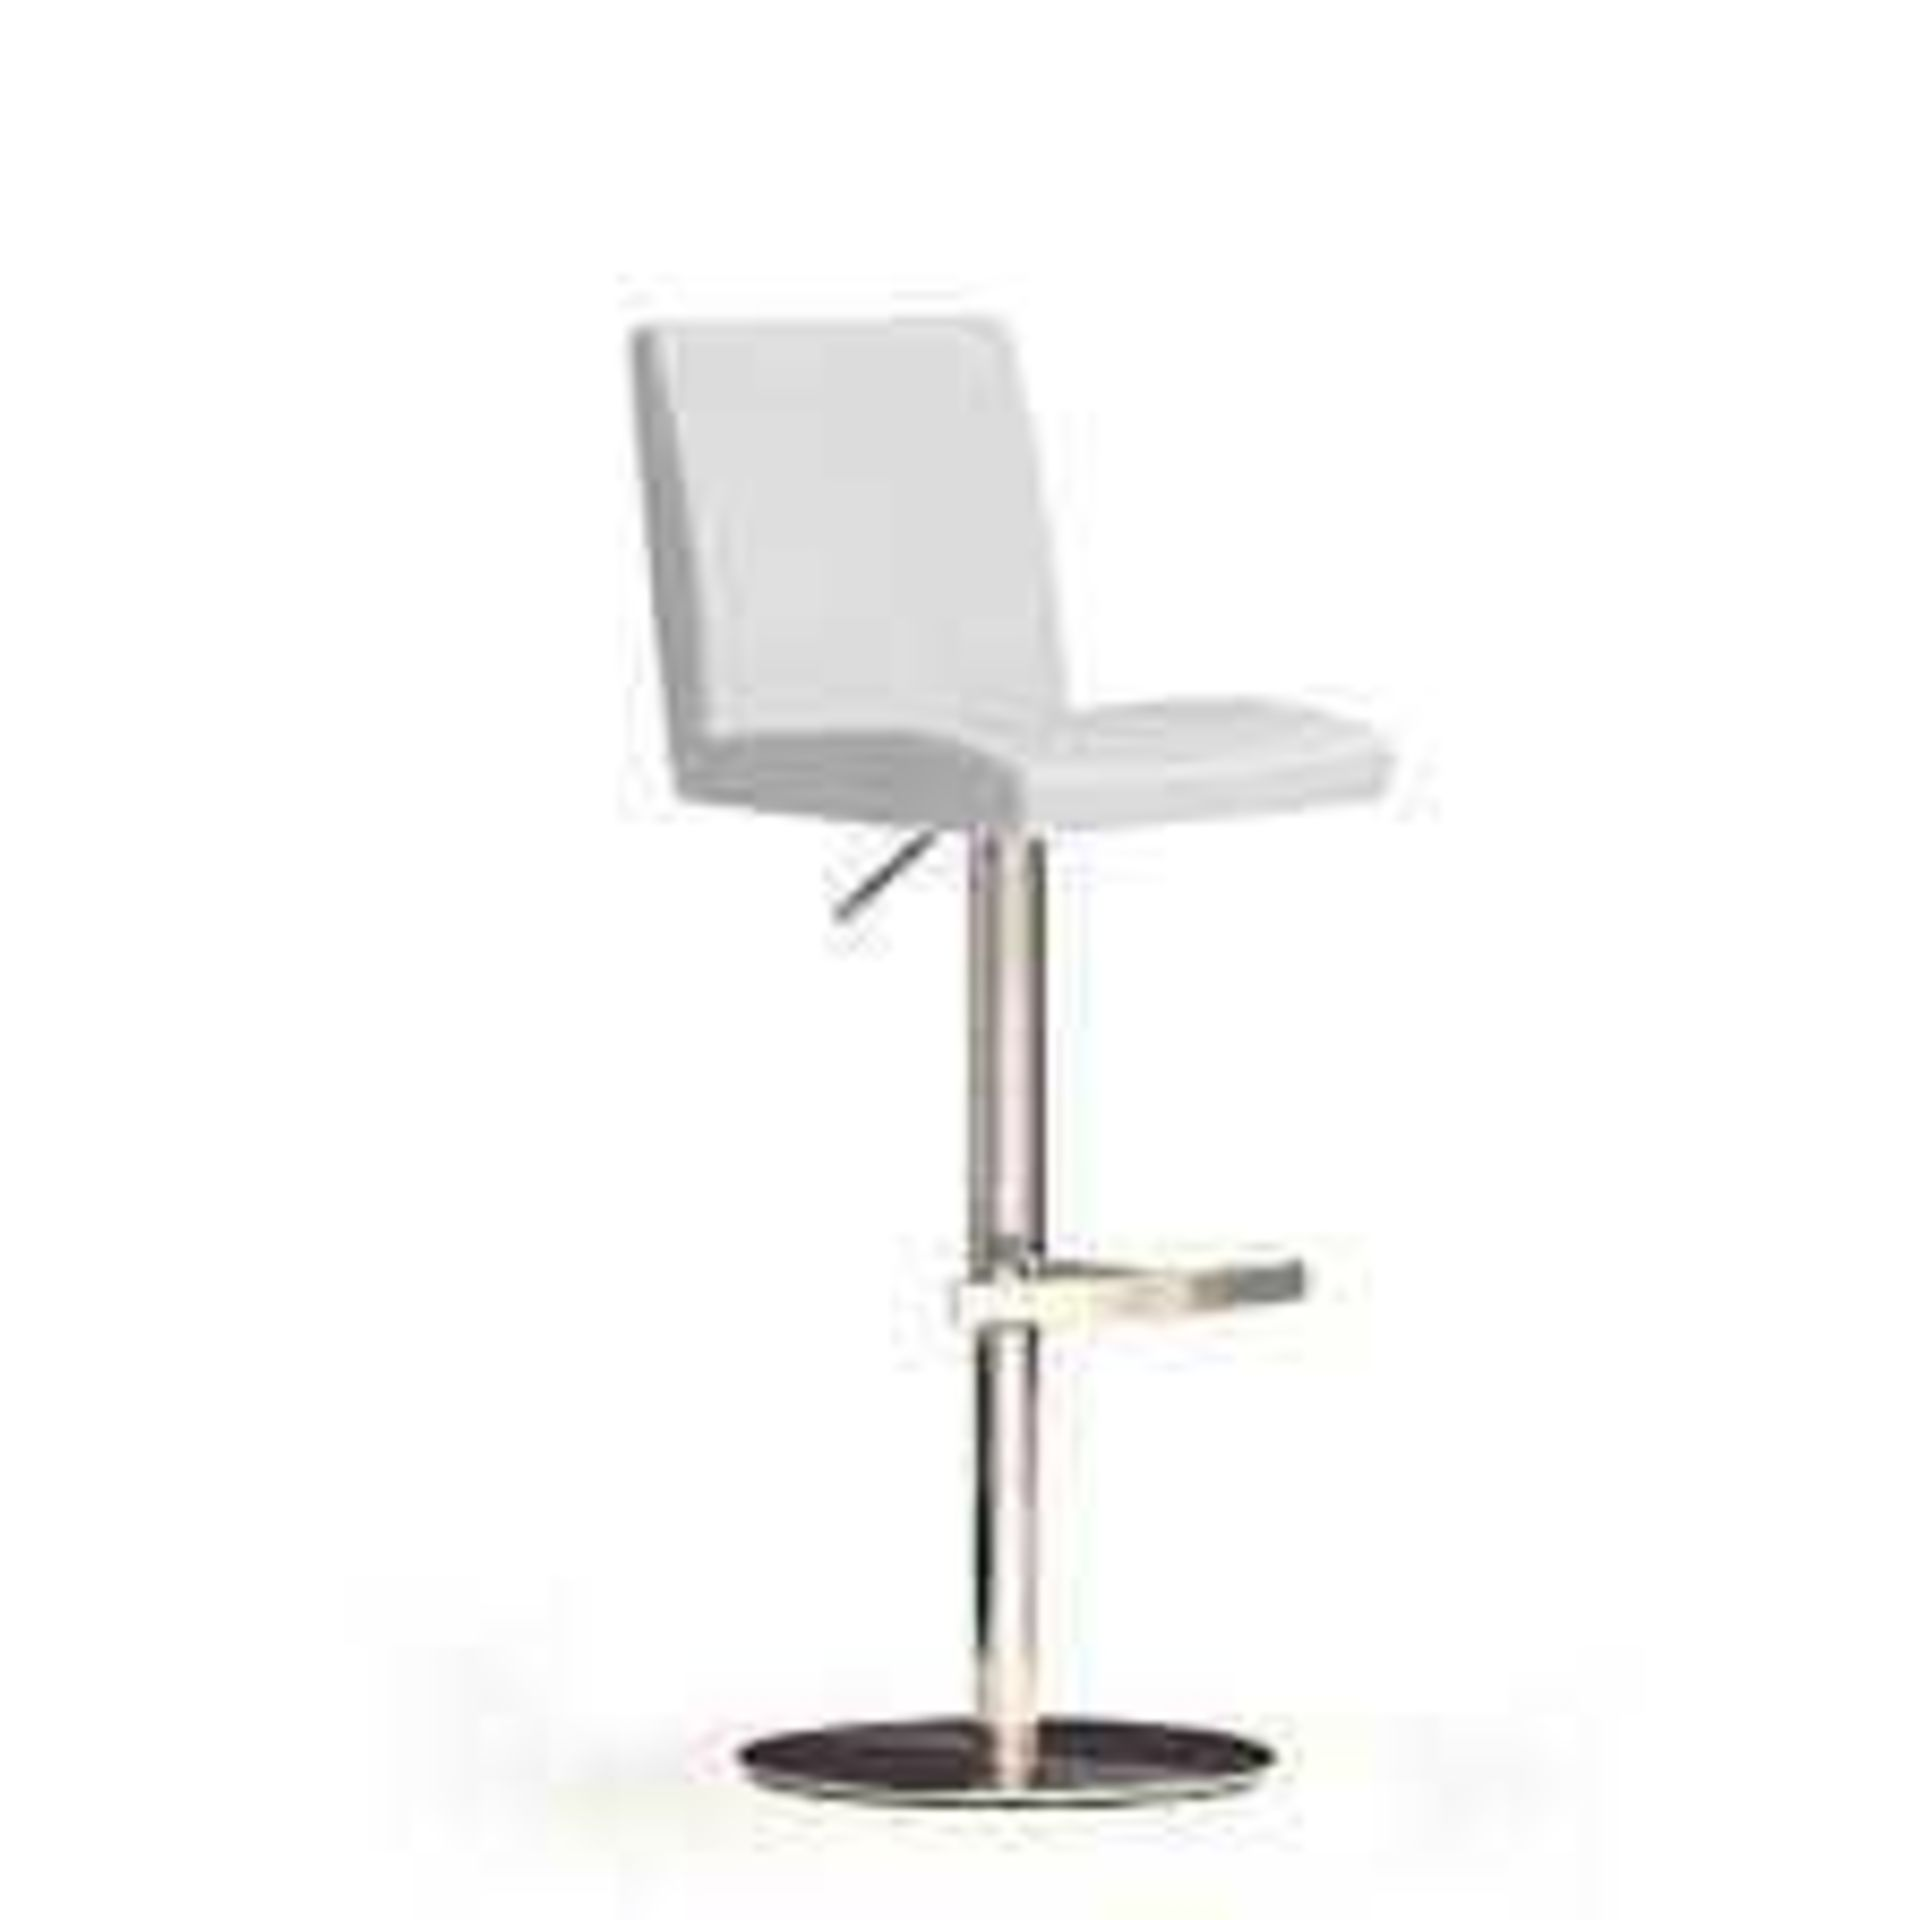 RRP £100 - Boxed 'Lopes' Barstool In White Faux Leather With Chrome Base (Appraisals Available On